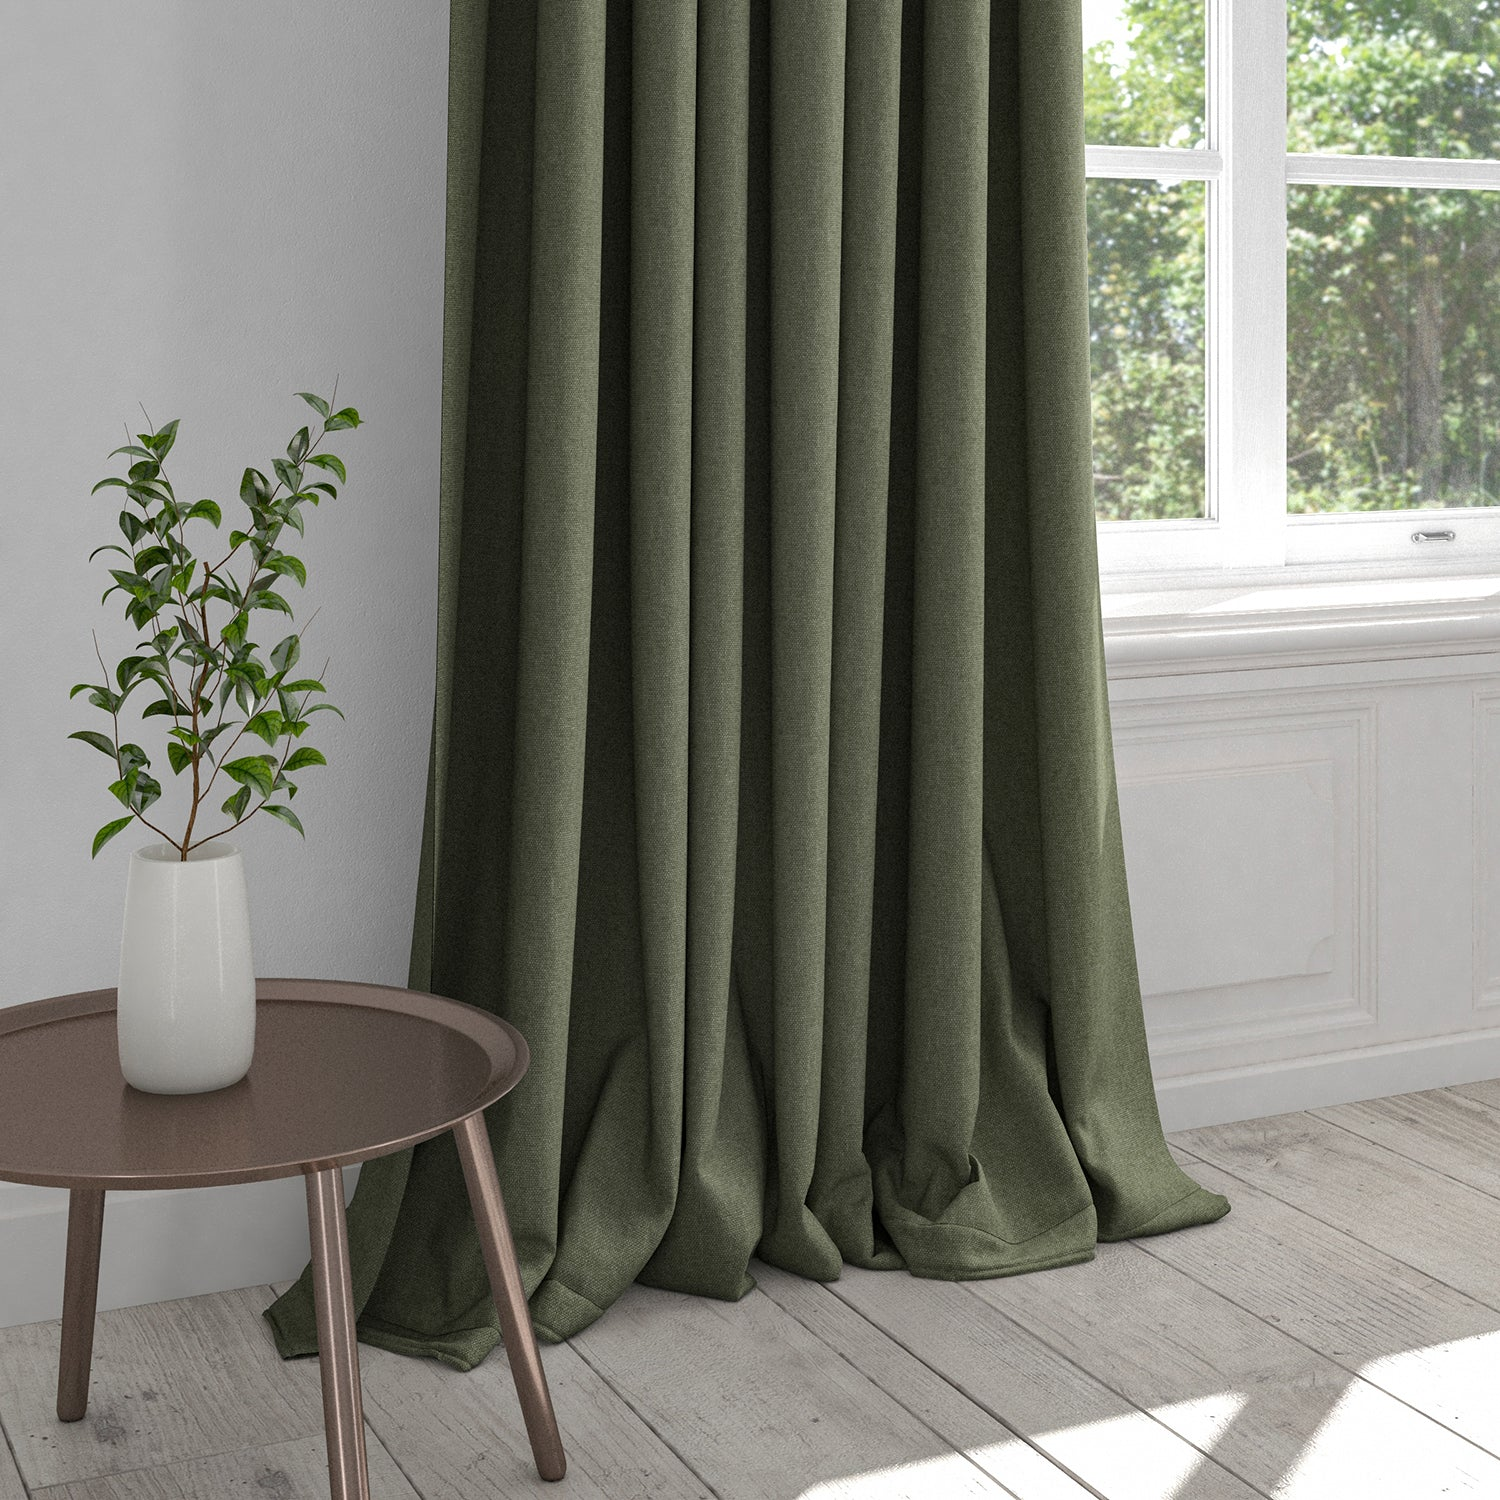 Curtain in a deep taupe plain cotton fabric with a stain resistant finish